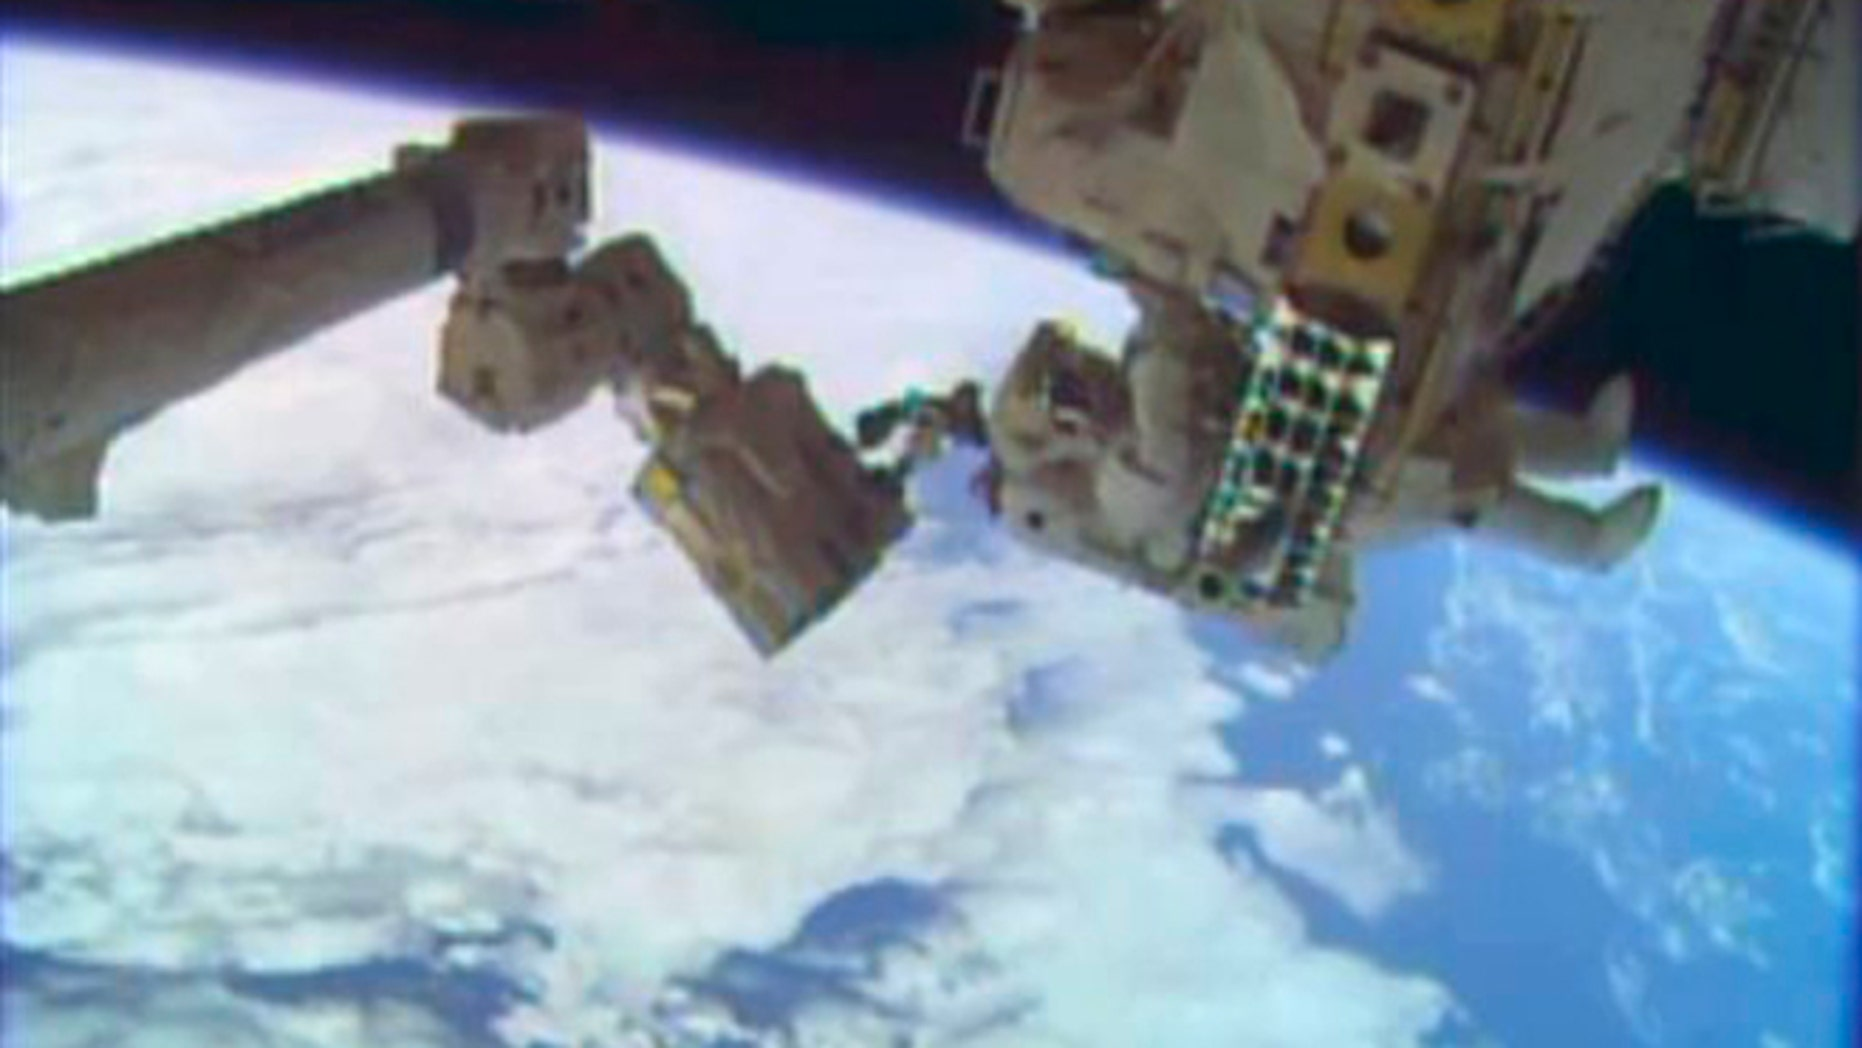 In this image taken from video provided by NASA, astronauts Rick Mastracchio, top, and Michael Hopkins work to repair an external cooling line on the International Space Station on Monday, Dec. 24, 2013, 260 miles above Earth. The external cooling line â one of two â shut down Dec. 11. The six-man crew had to turn off all nonessential equipment, including experiments. (AP Photo/NASA)